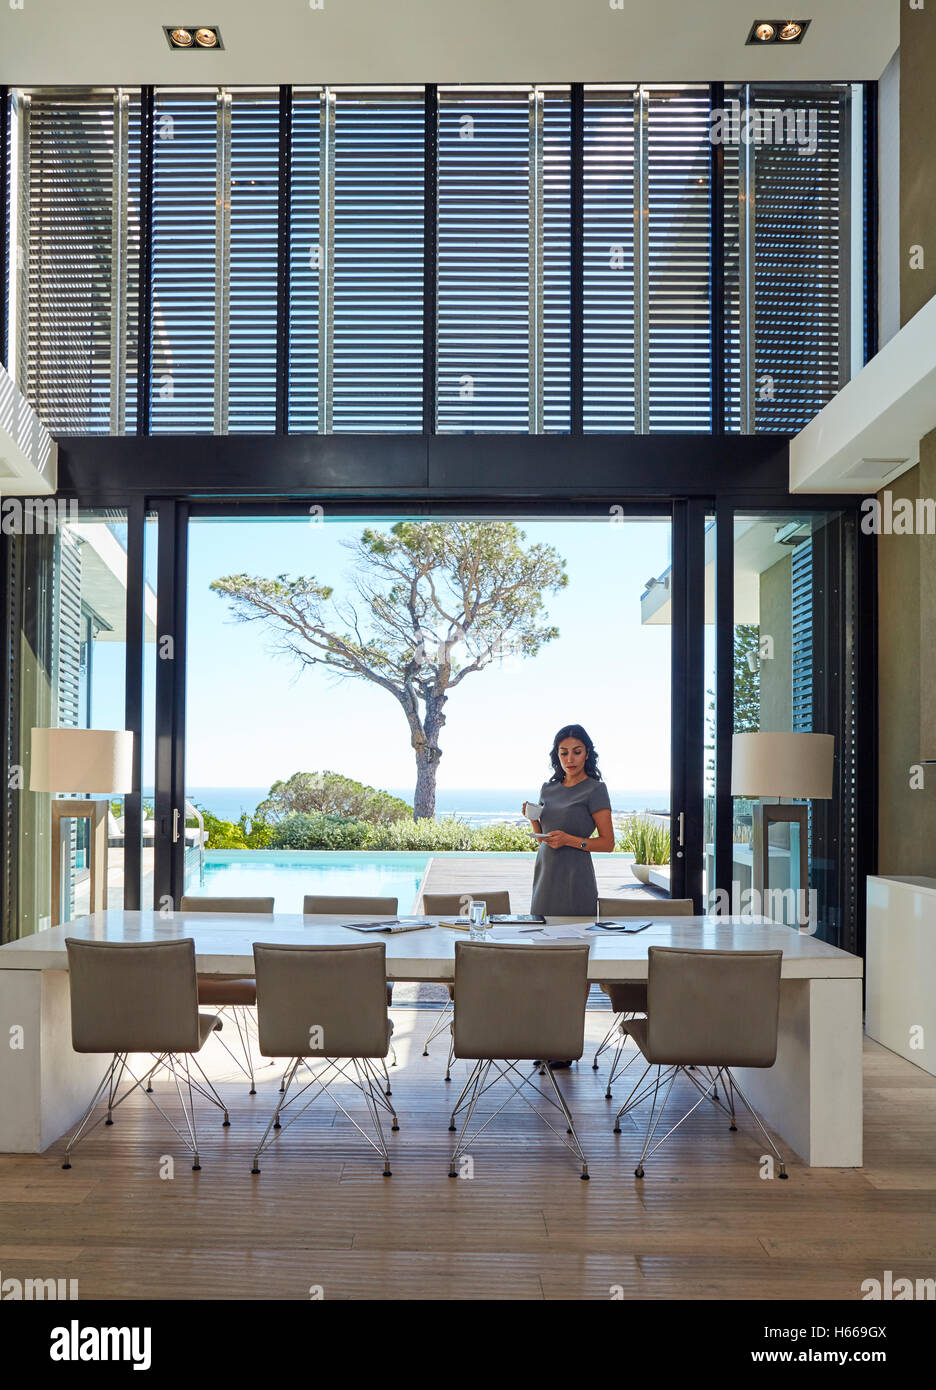 Businesswoman working at dining table in luxury home showcase interior - Stock Image